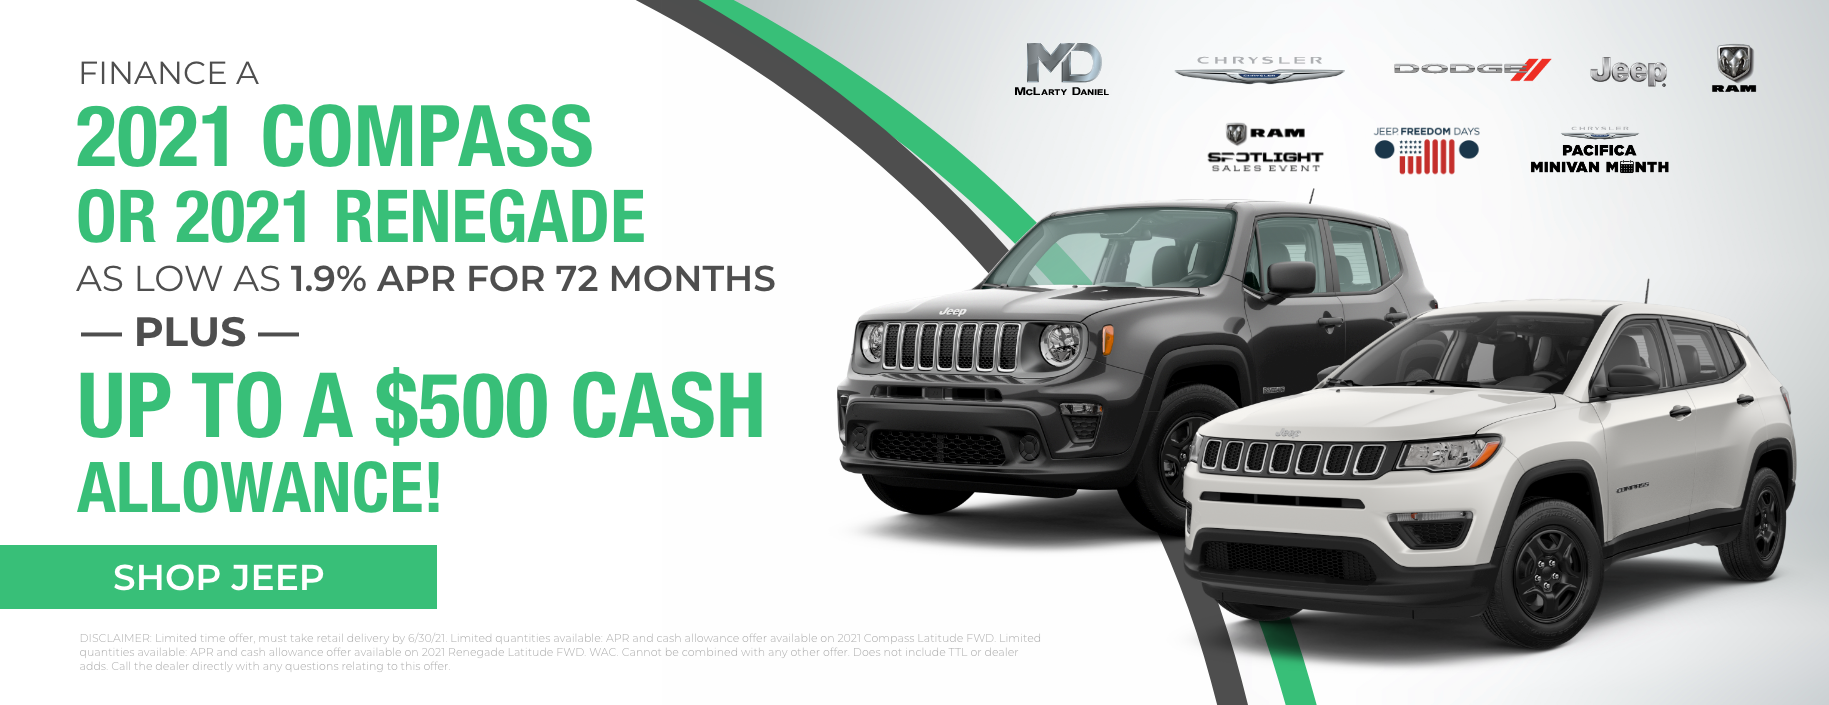 Finance a 2021 Compass or Renegade as low as 1.9% APR for 72 months PLUS up to a $500 cash allowance!